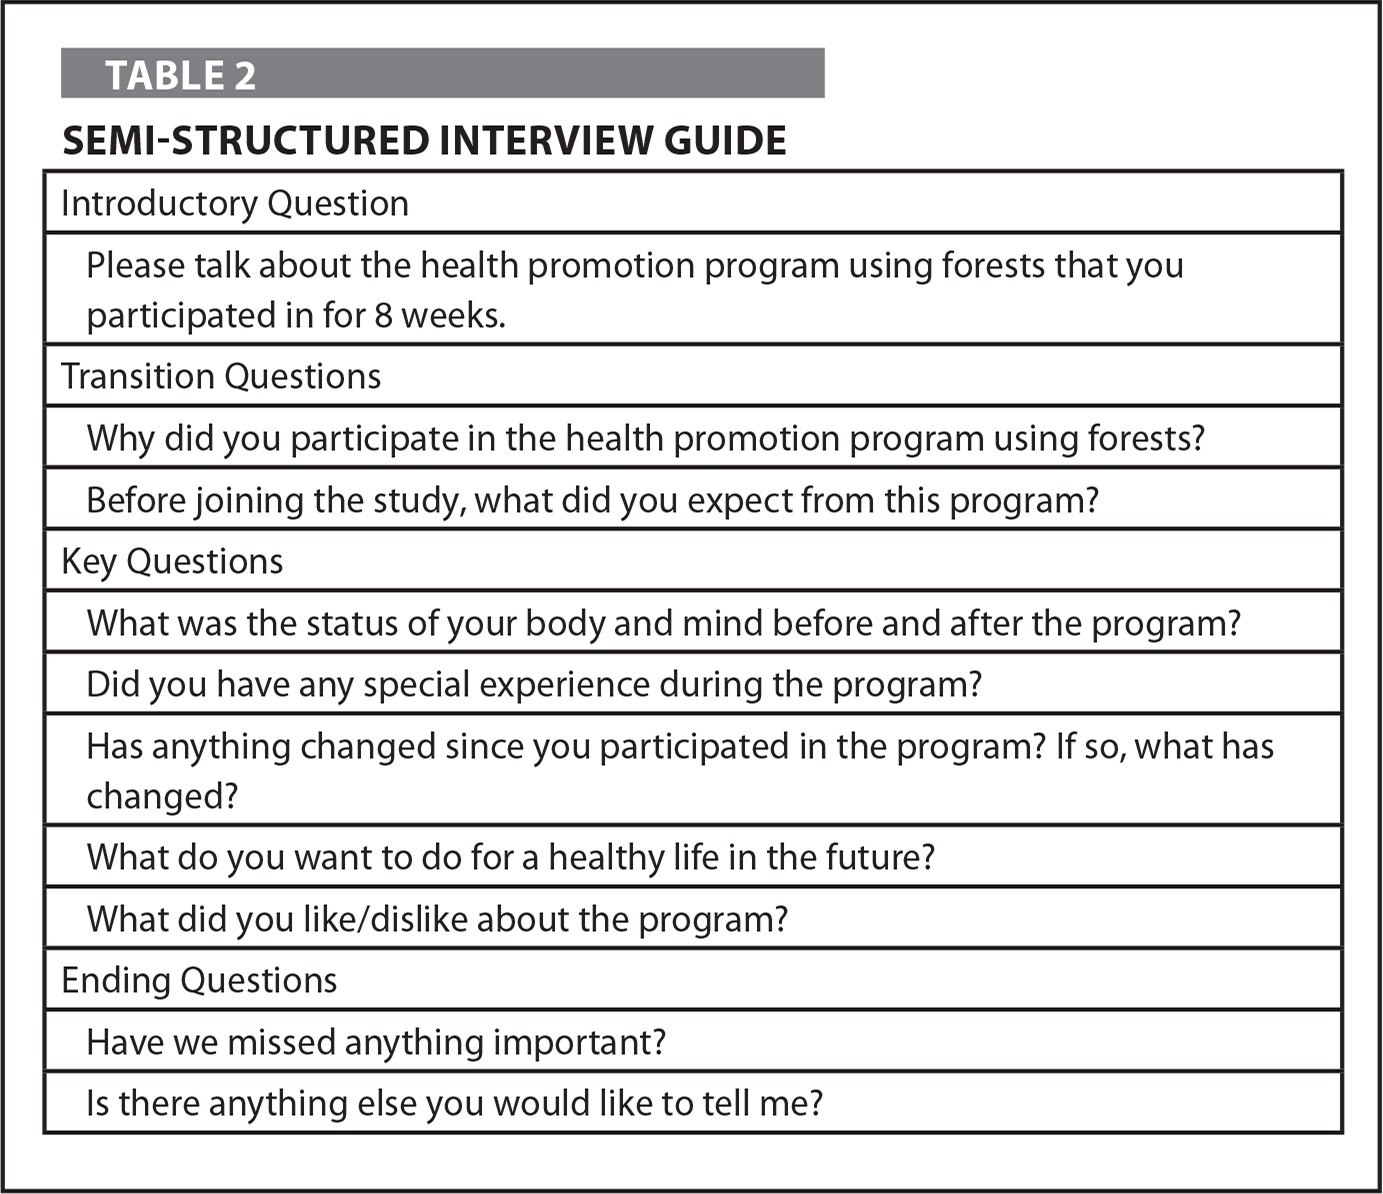 Semi-Structured Interview Guide